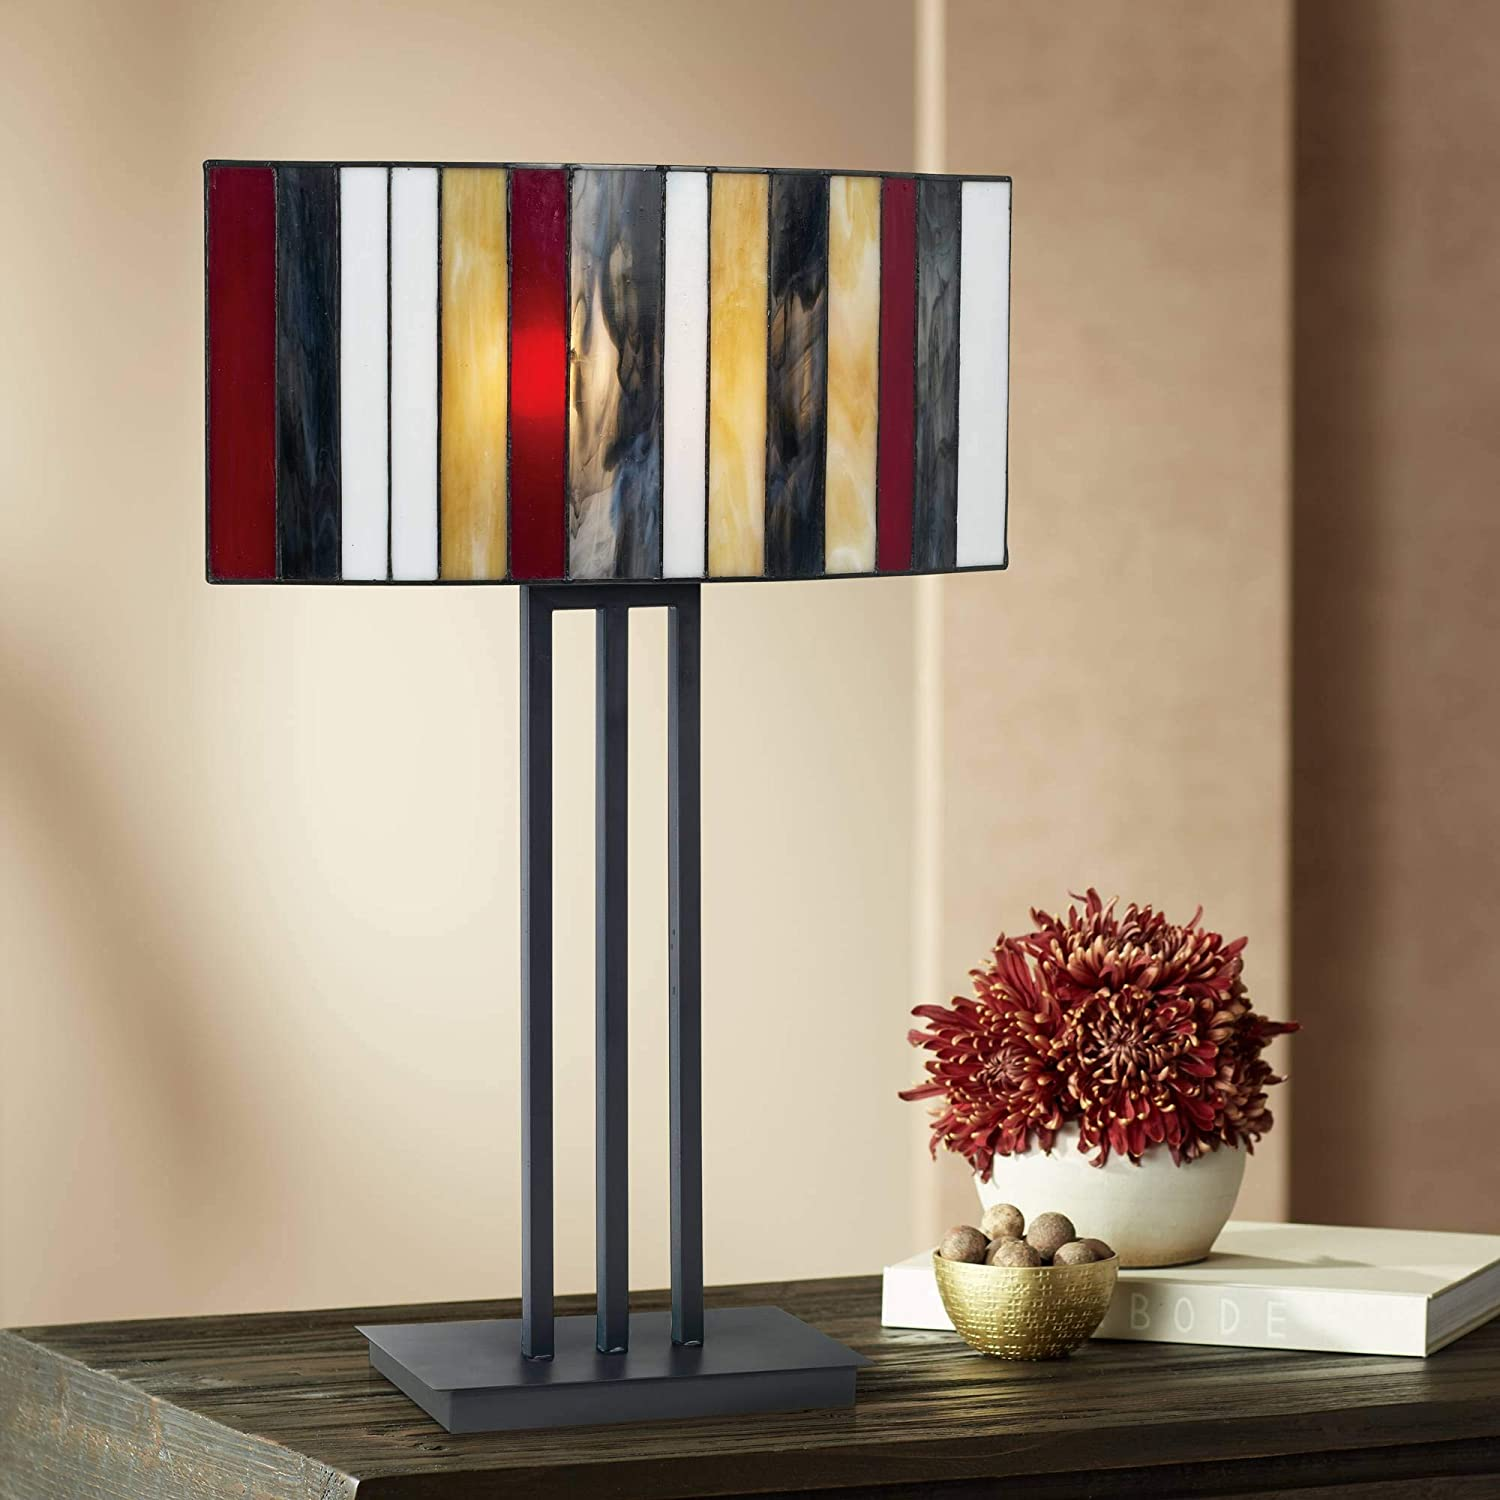 Modern Tiffany Style Table Lamp Decor Bronze Brown Iron Multi Color Striped Stained Glass Shade for Living Room Bedroom House Bedside Nightstand Home Office Reading Family - Robert Louis Tiffany